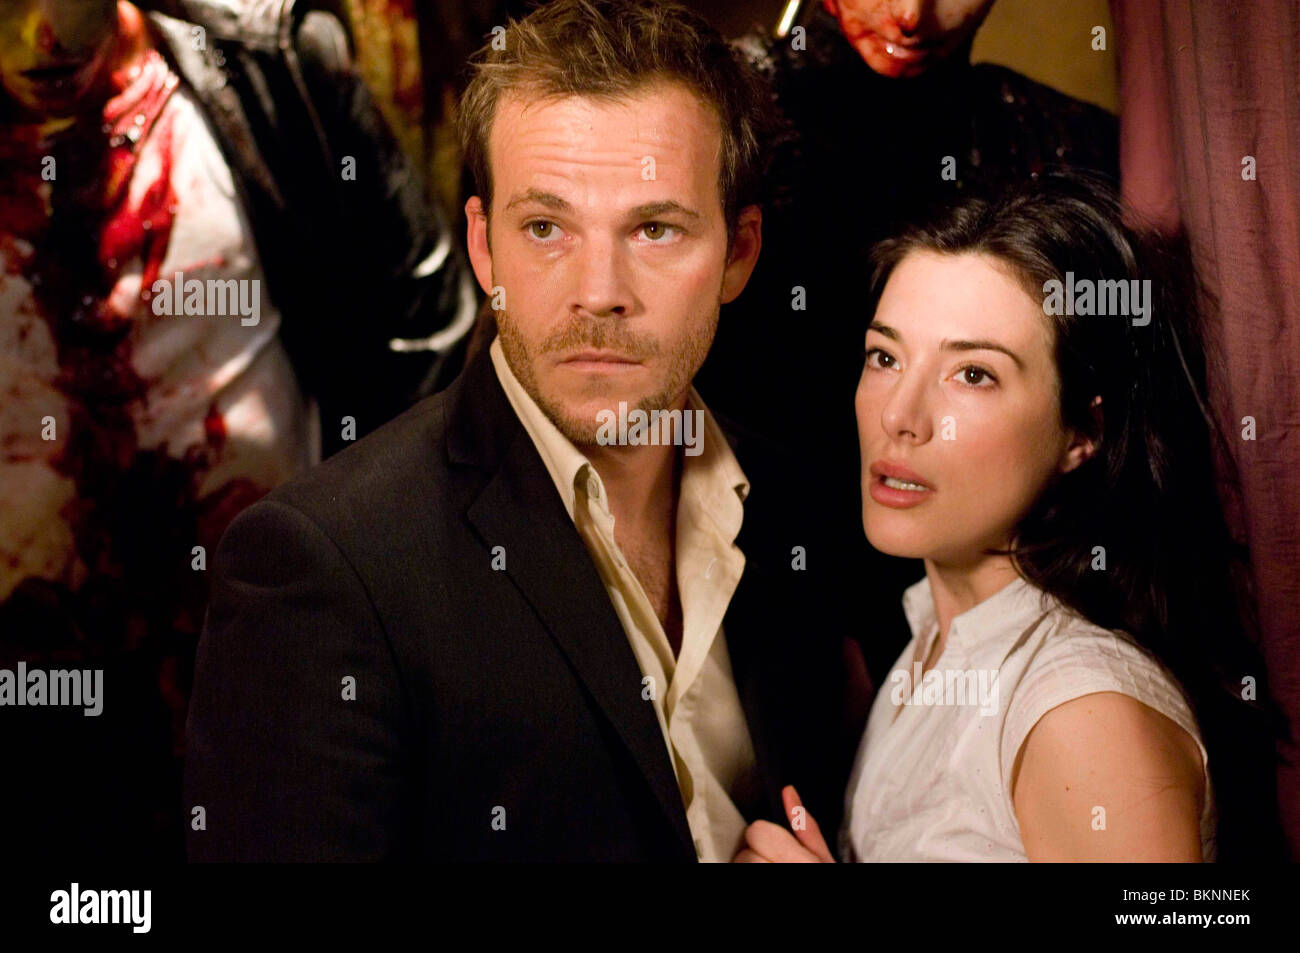 BOTCHED (2007) STEPHEN DORFF, JAIME MURRAY KIT RYAN (DIR) BOTD 001 - Stock Image